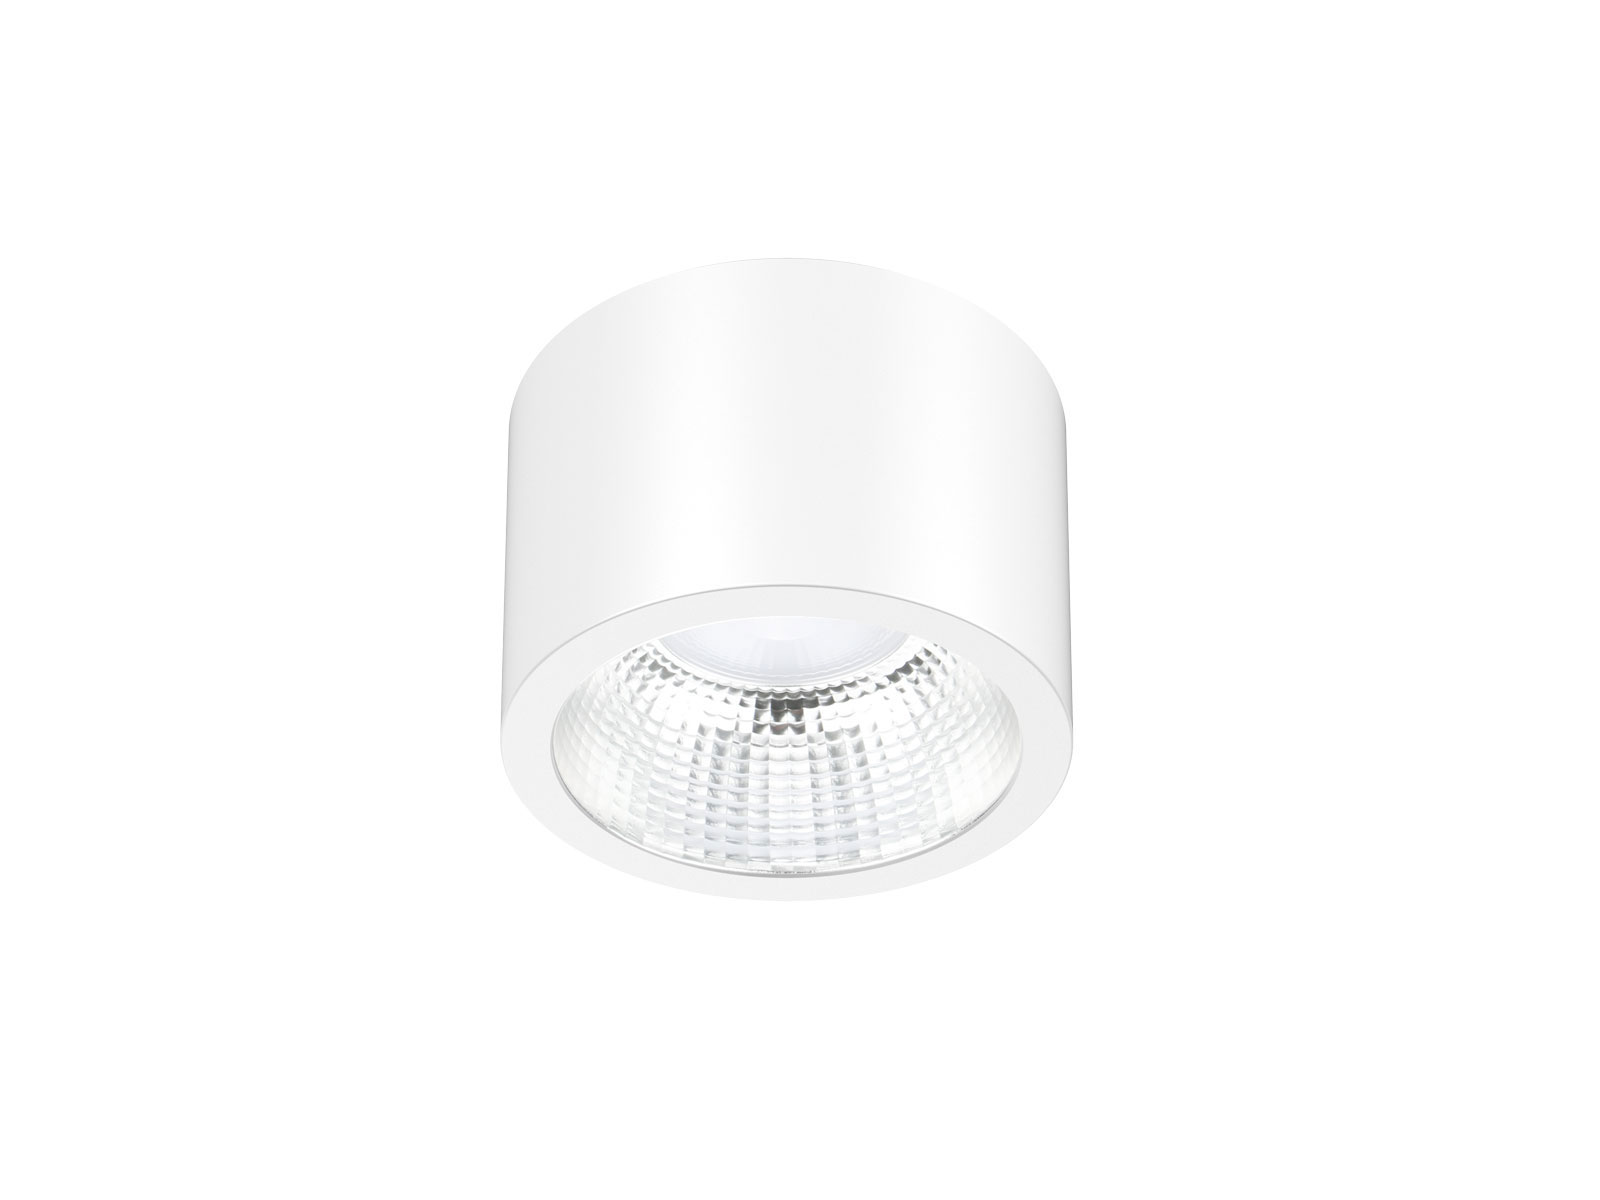 Dl115 White Waterproof Ceiling Mounted Downlight